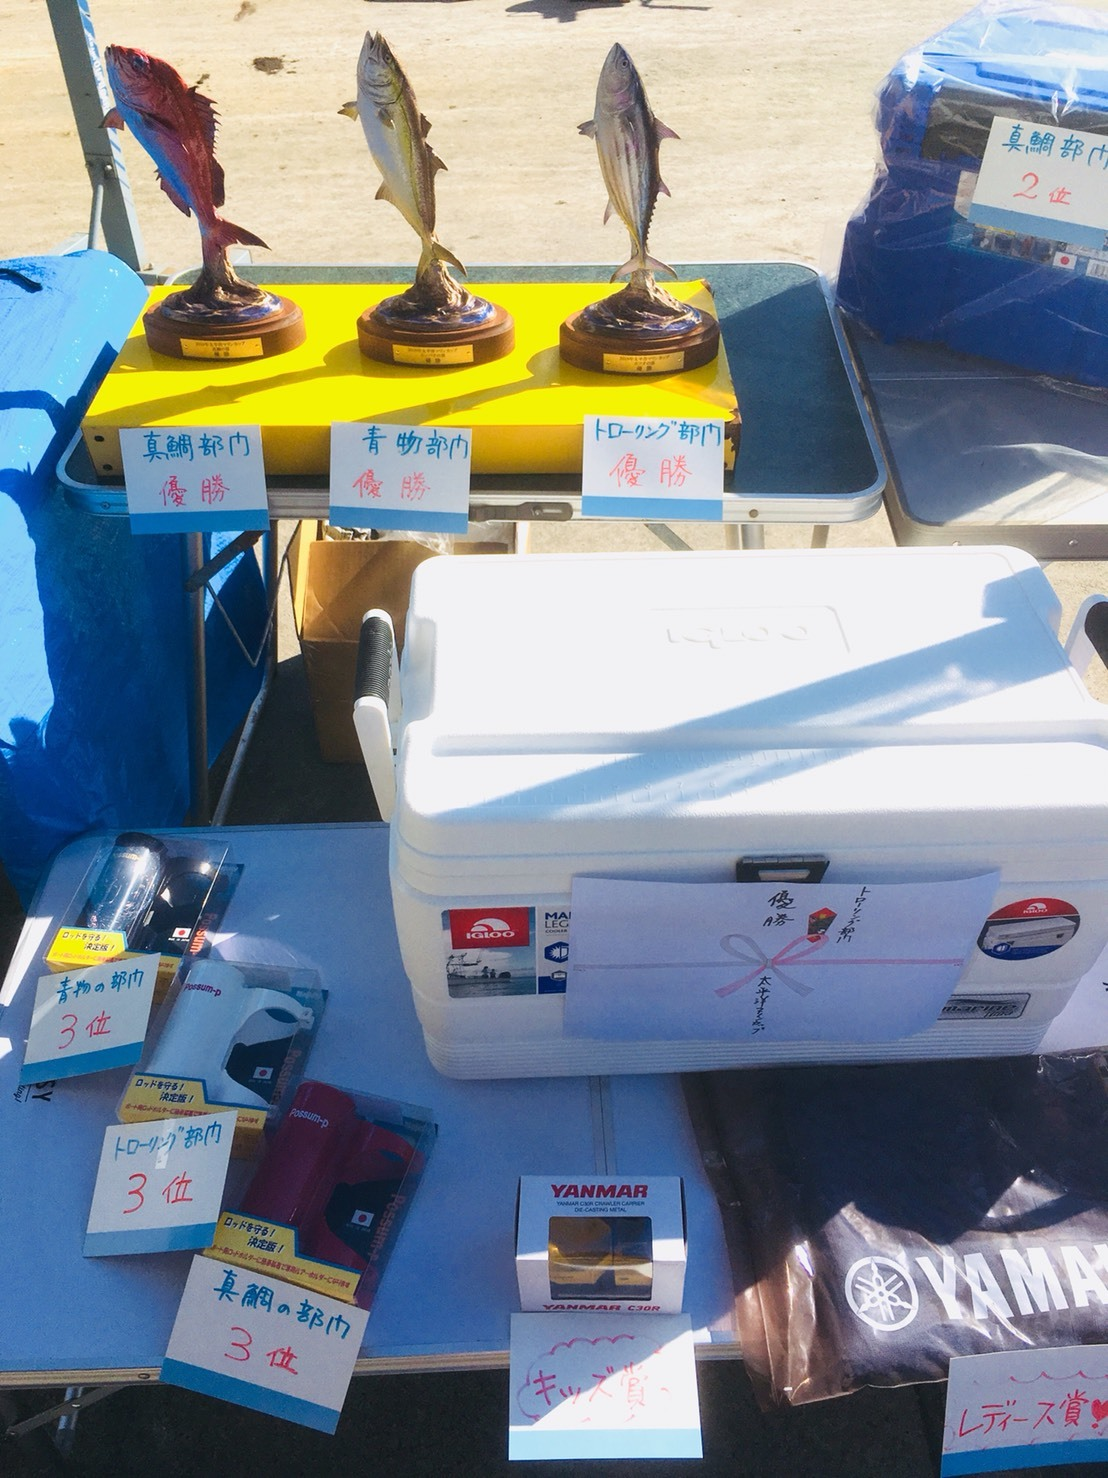 BOAY GAME FISHING in 高知 太平洋マリンcup 2018 レポート!_a0132631_15501484.jpg